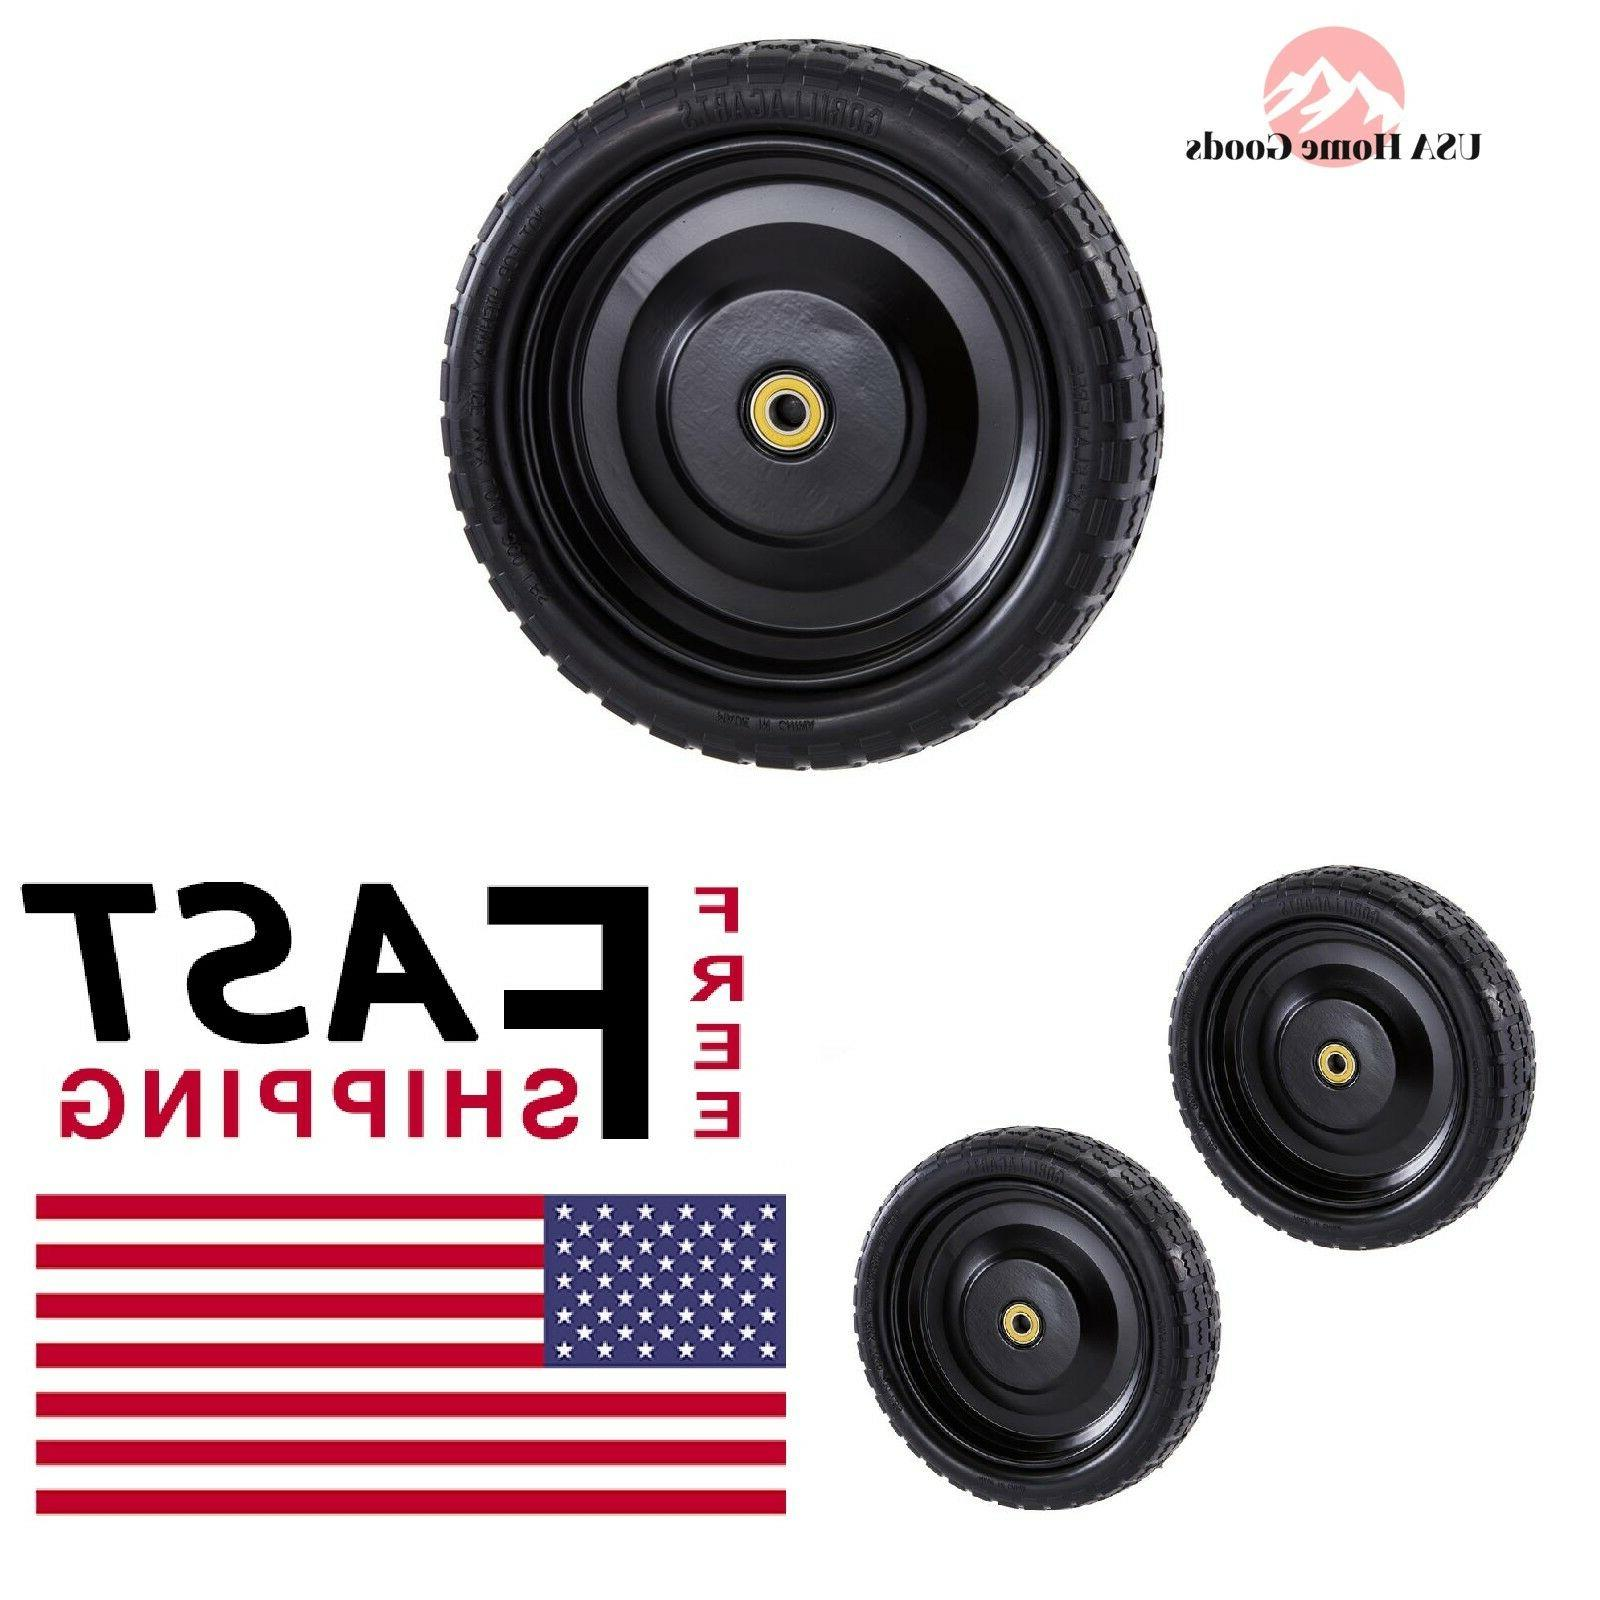 gct 13nf replacement tire